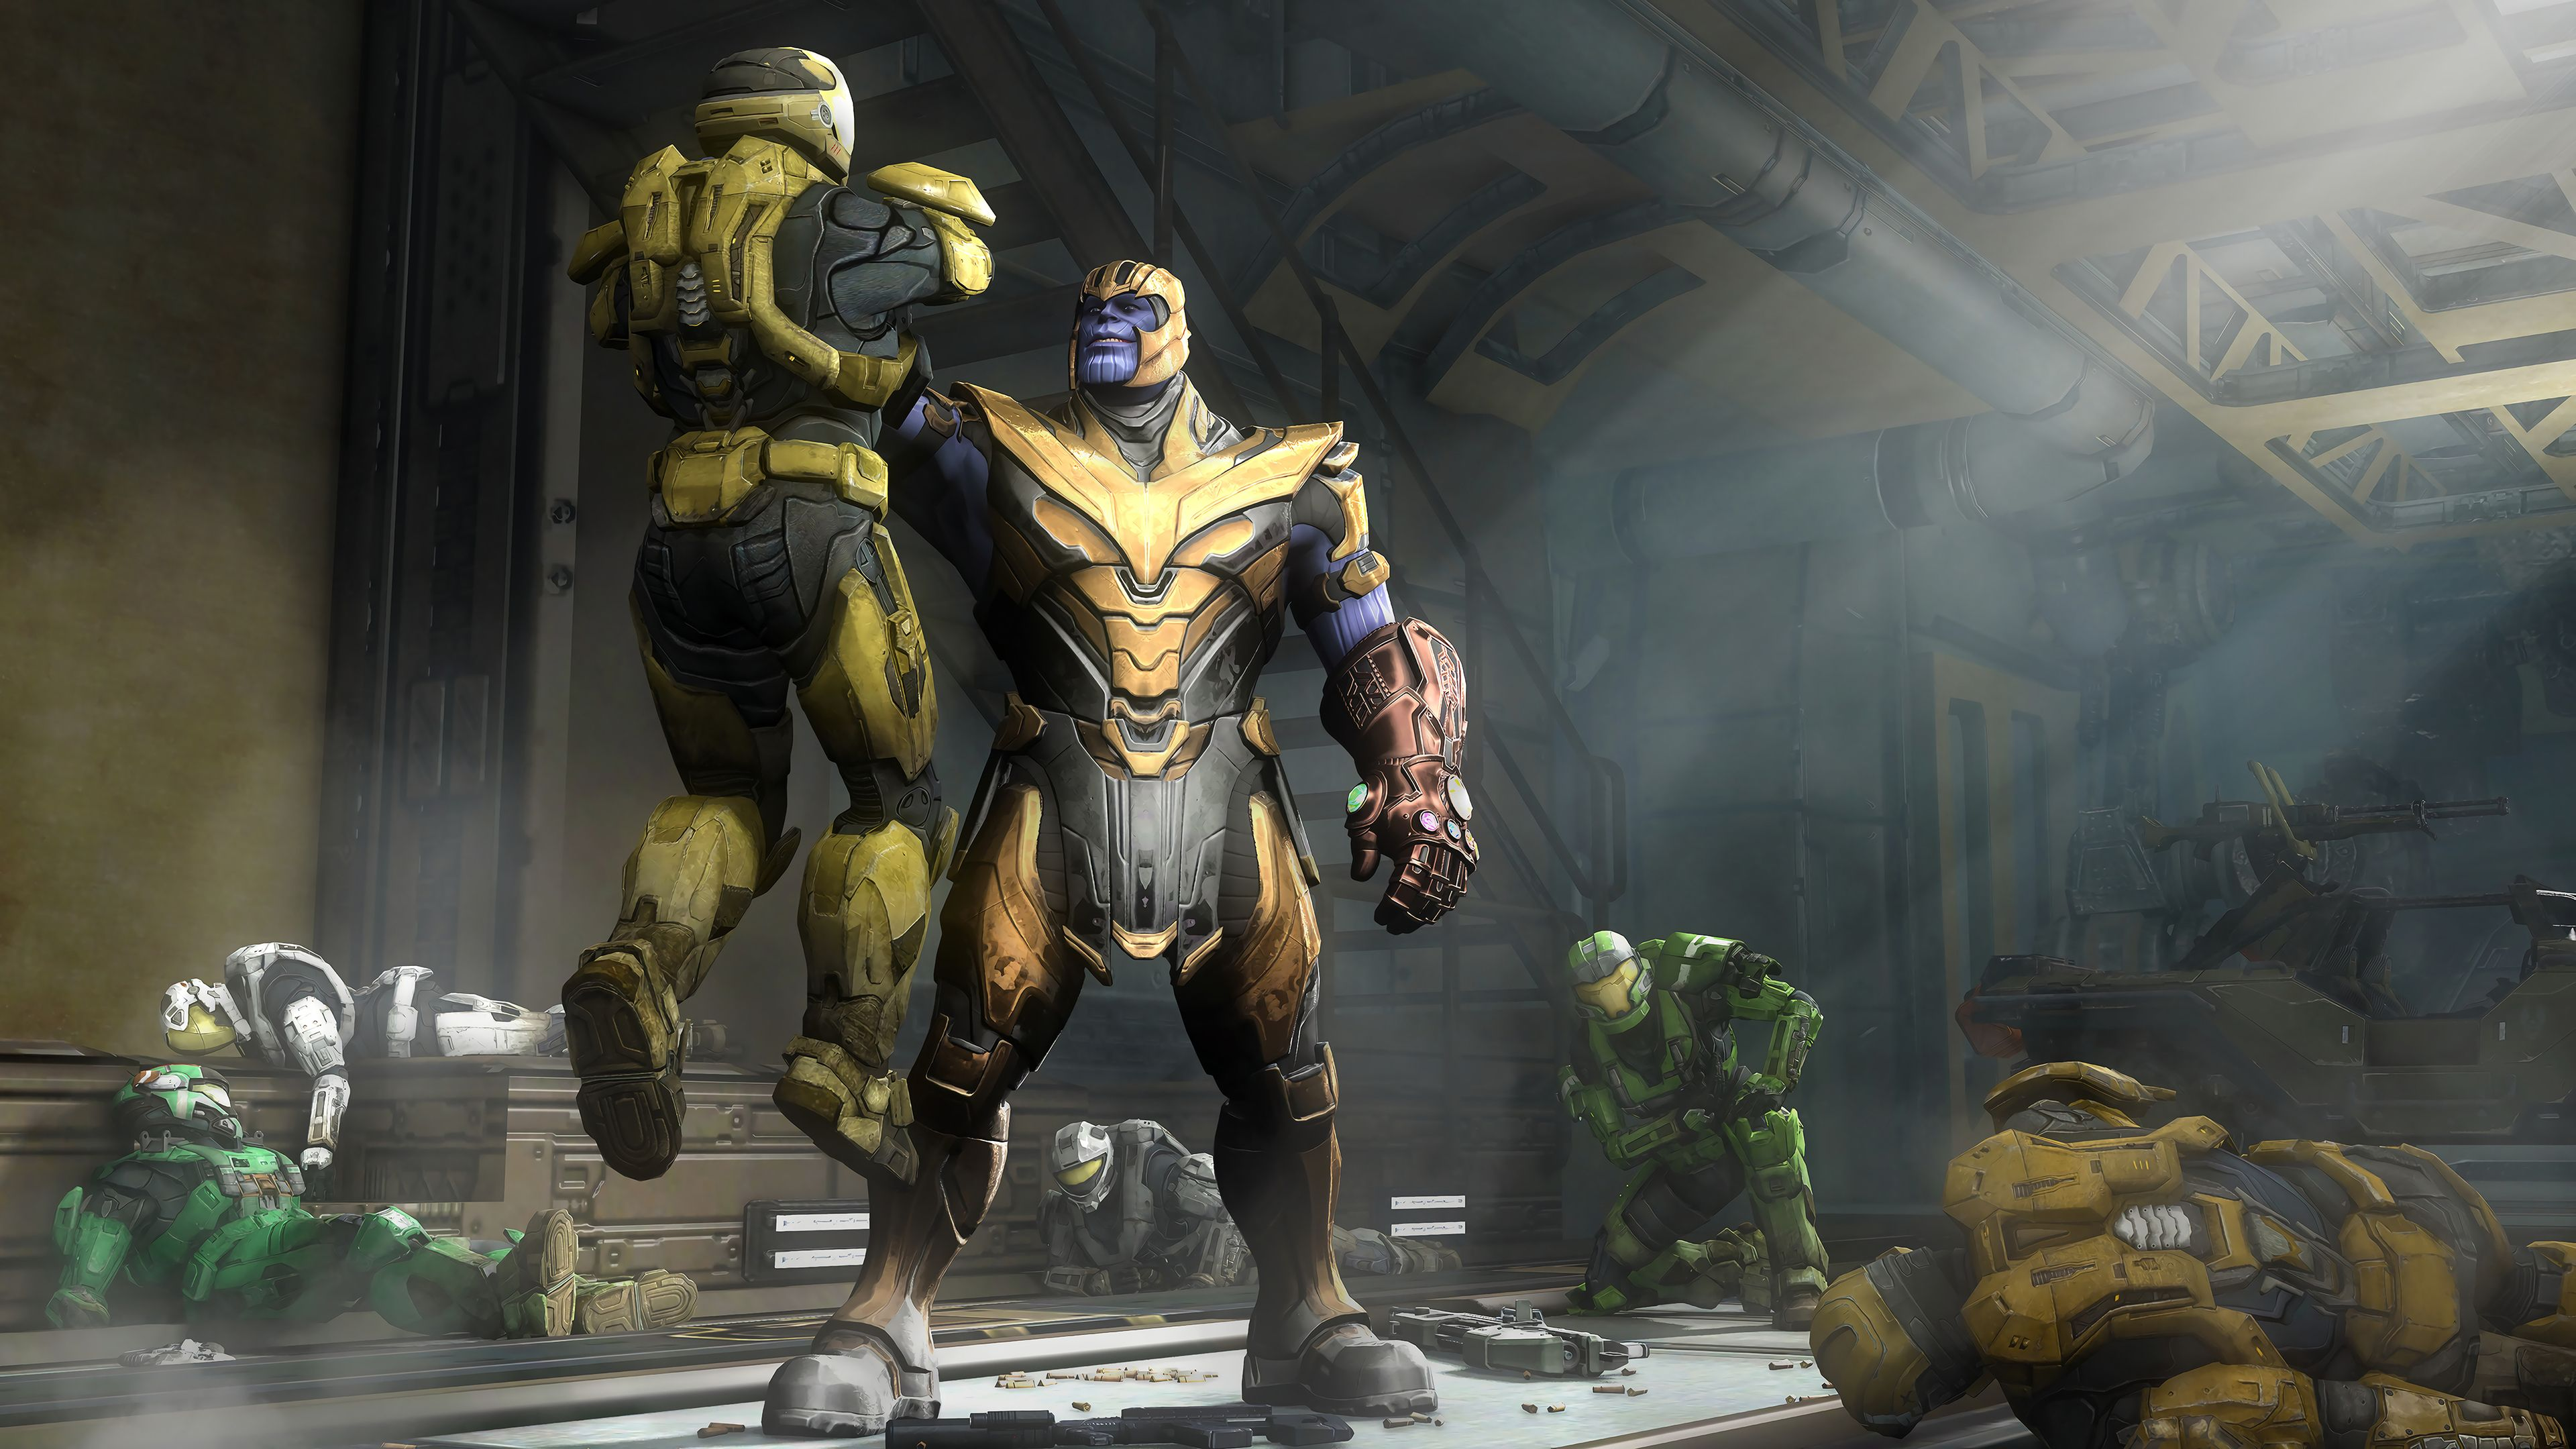 Marvel Thanos And Halo Spartan 4k Thanos Wallpapers Marvel